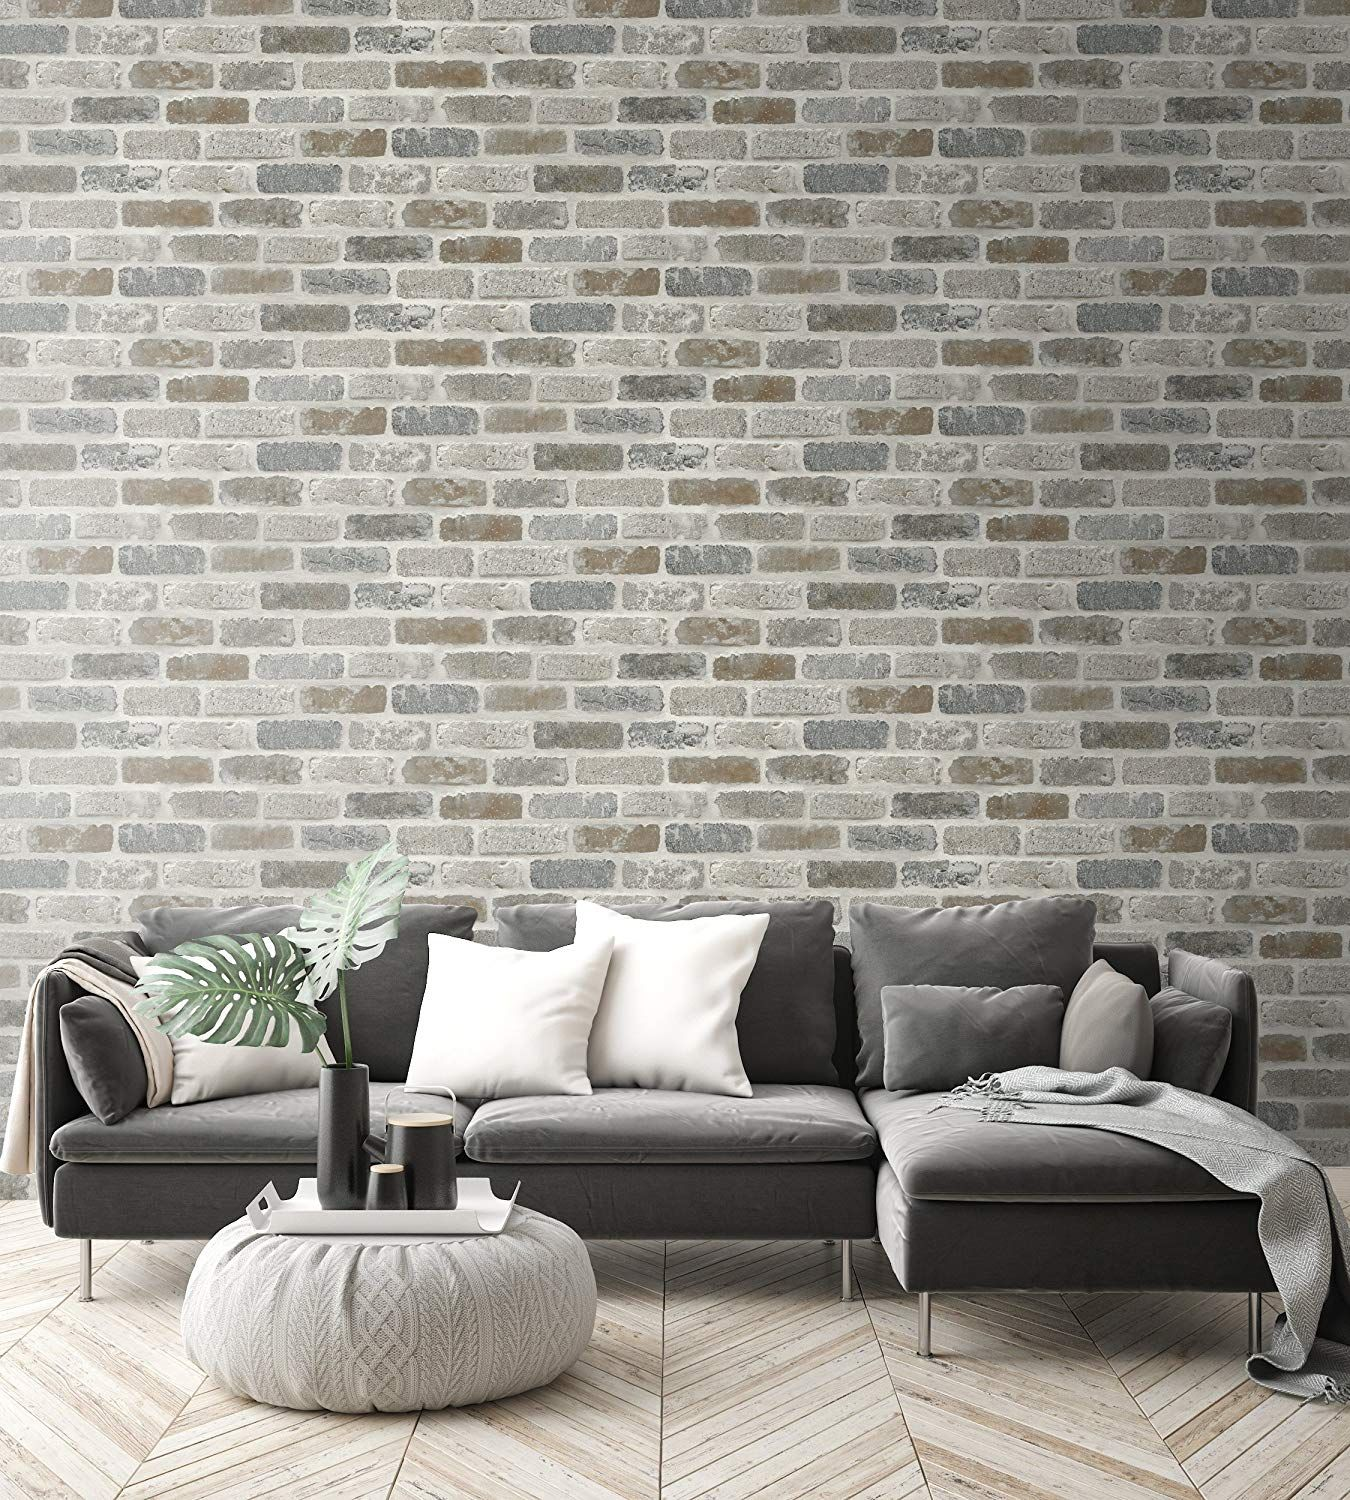 Nextwall Washed Faux Brick Peel And Stick Wallpaper Amazon Com Faux Brick Wallpaper Faux Brick Brick Wallpaper Peel And Stick